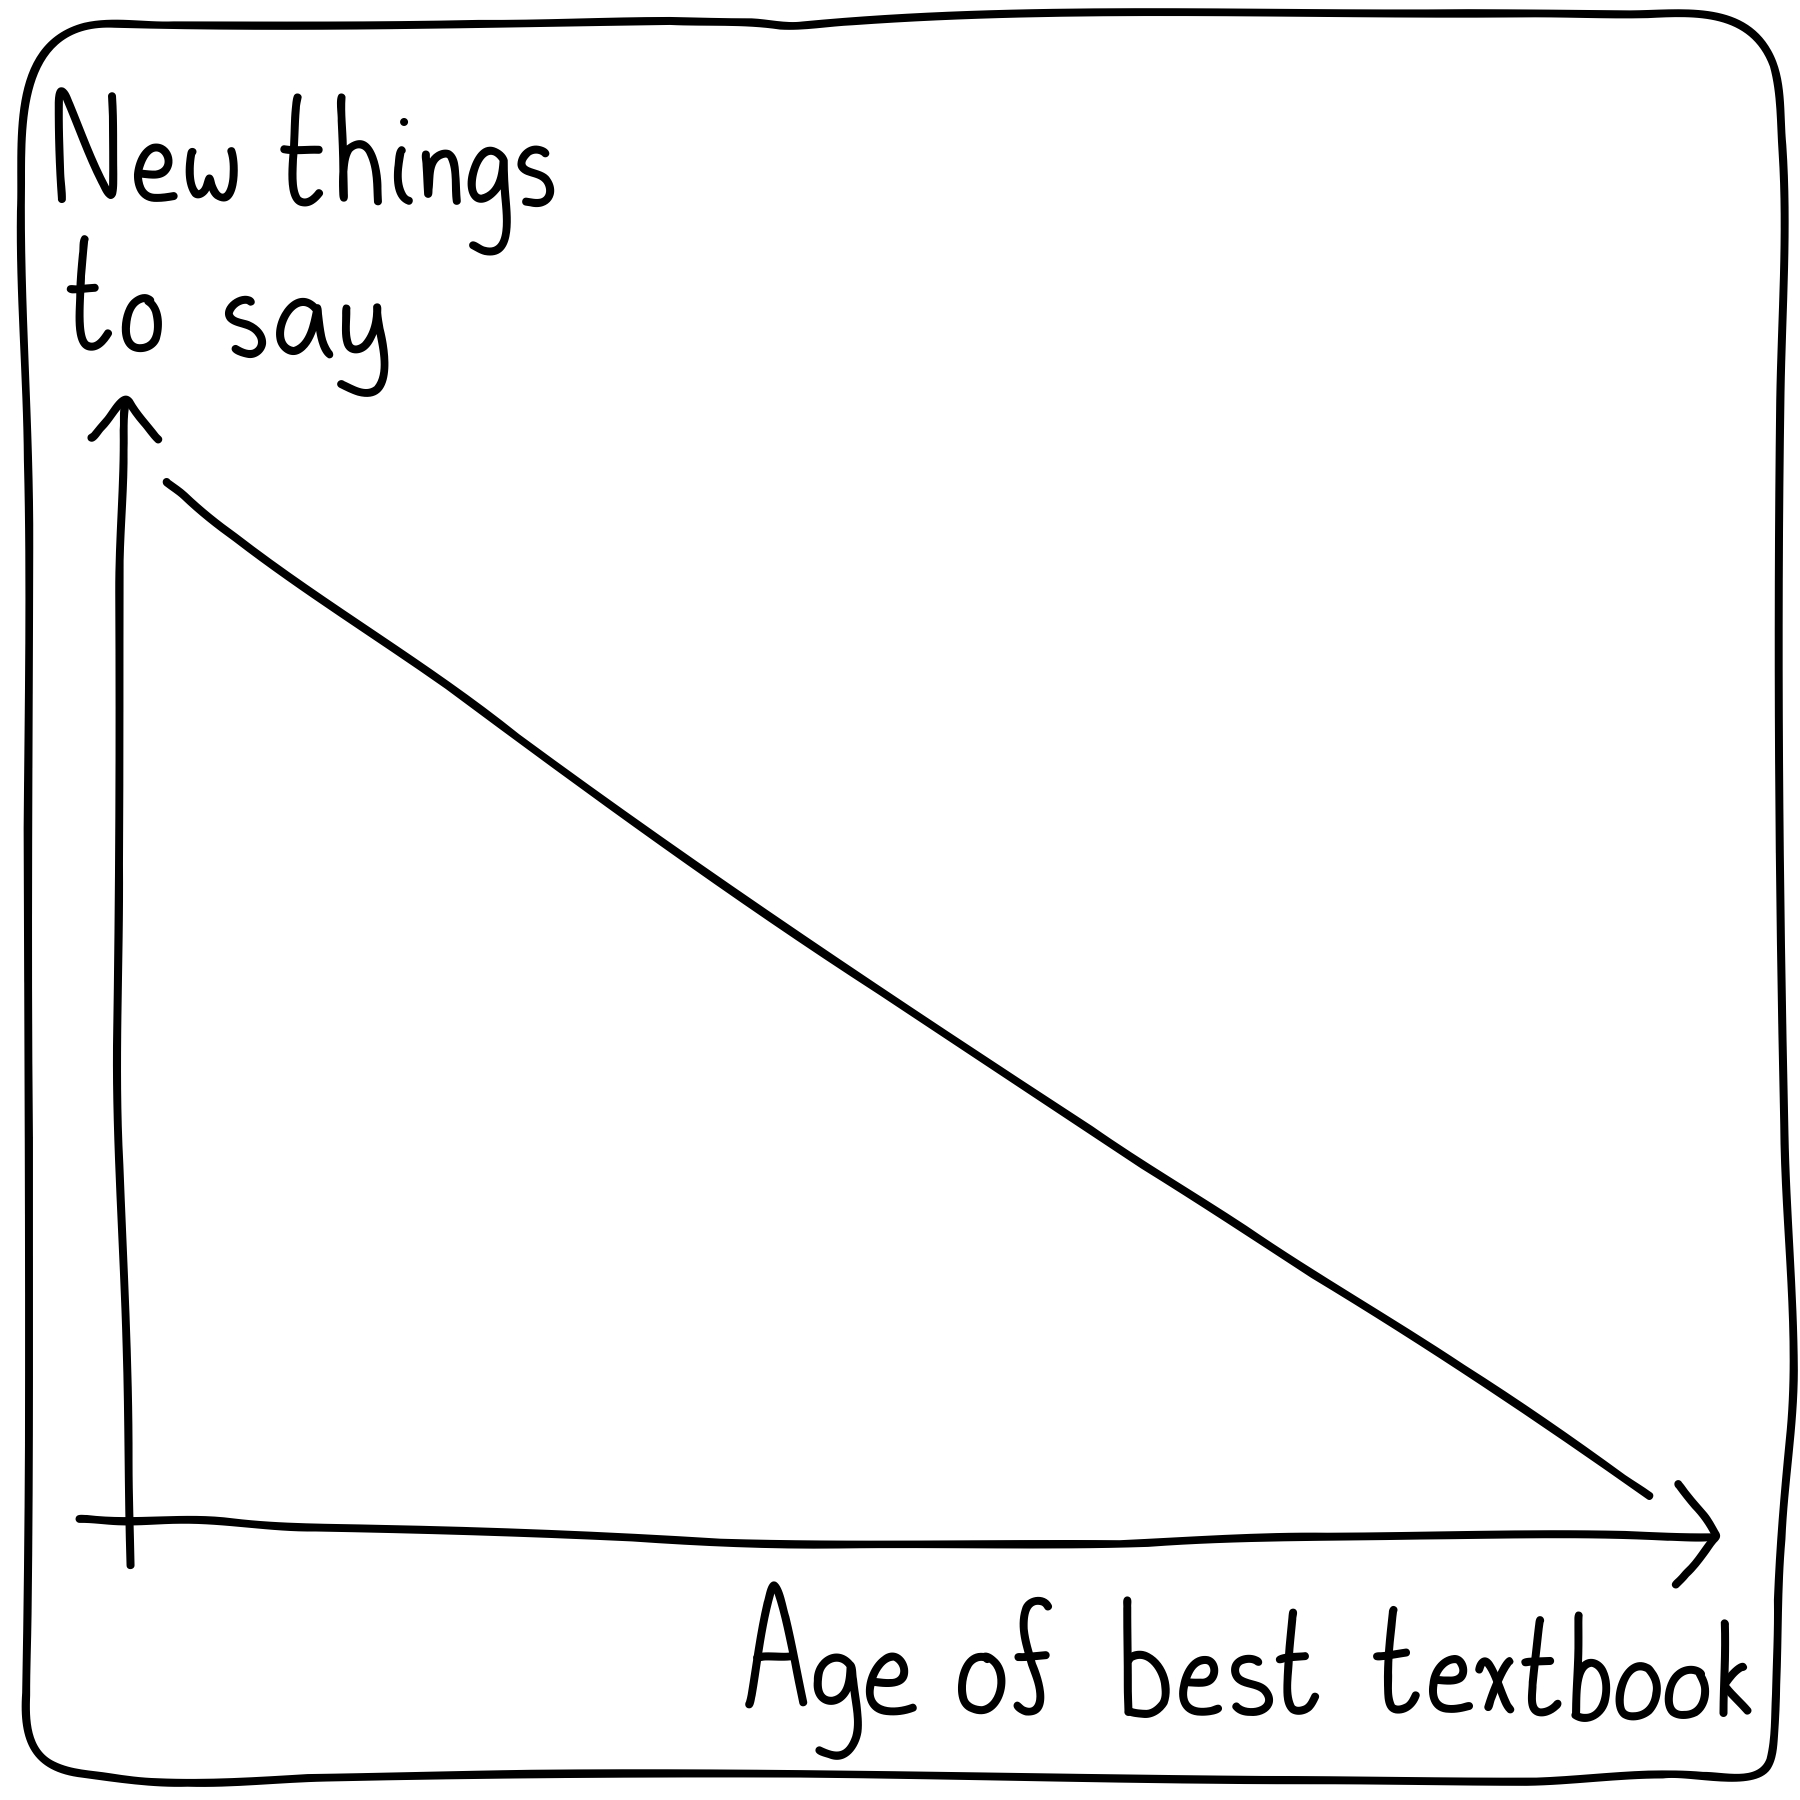 A plot of new things left to be said versus the age of the best textbook. As the best textbook gets older, there are fewer and fewer things left to say.